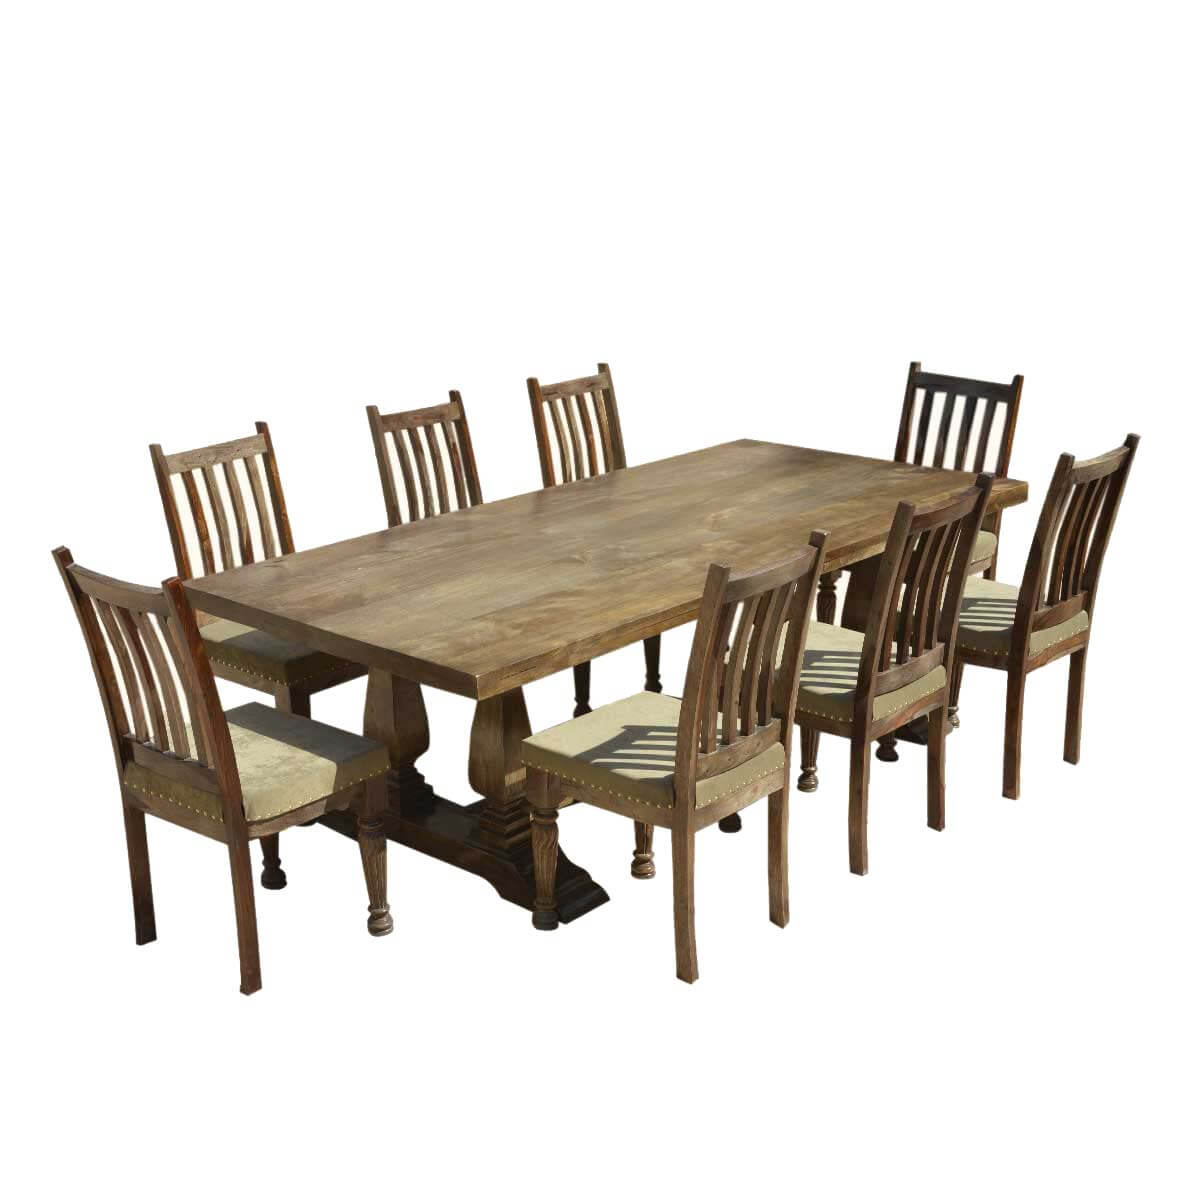 rustic dining table and chairs white rocking chair outdoor farmhouse solid wood trestle